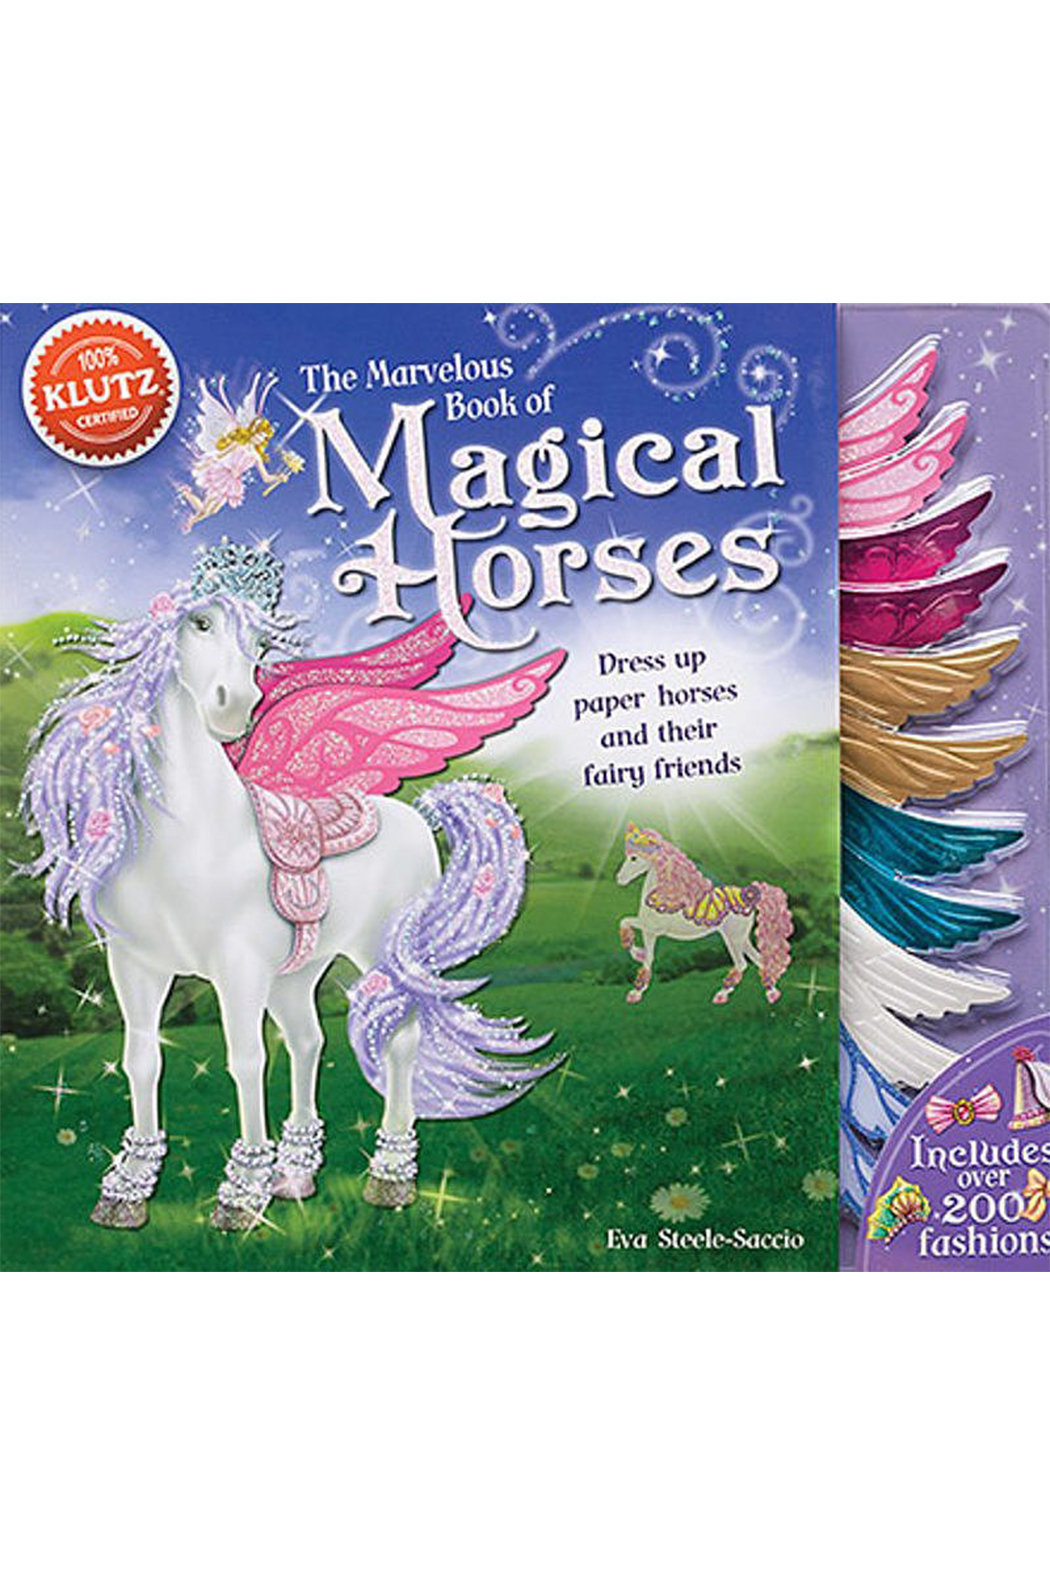 Klutz The Marvelous Book of Magical Horses - Main Image